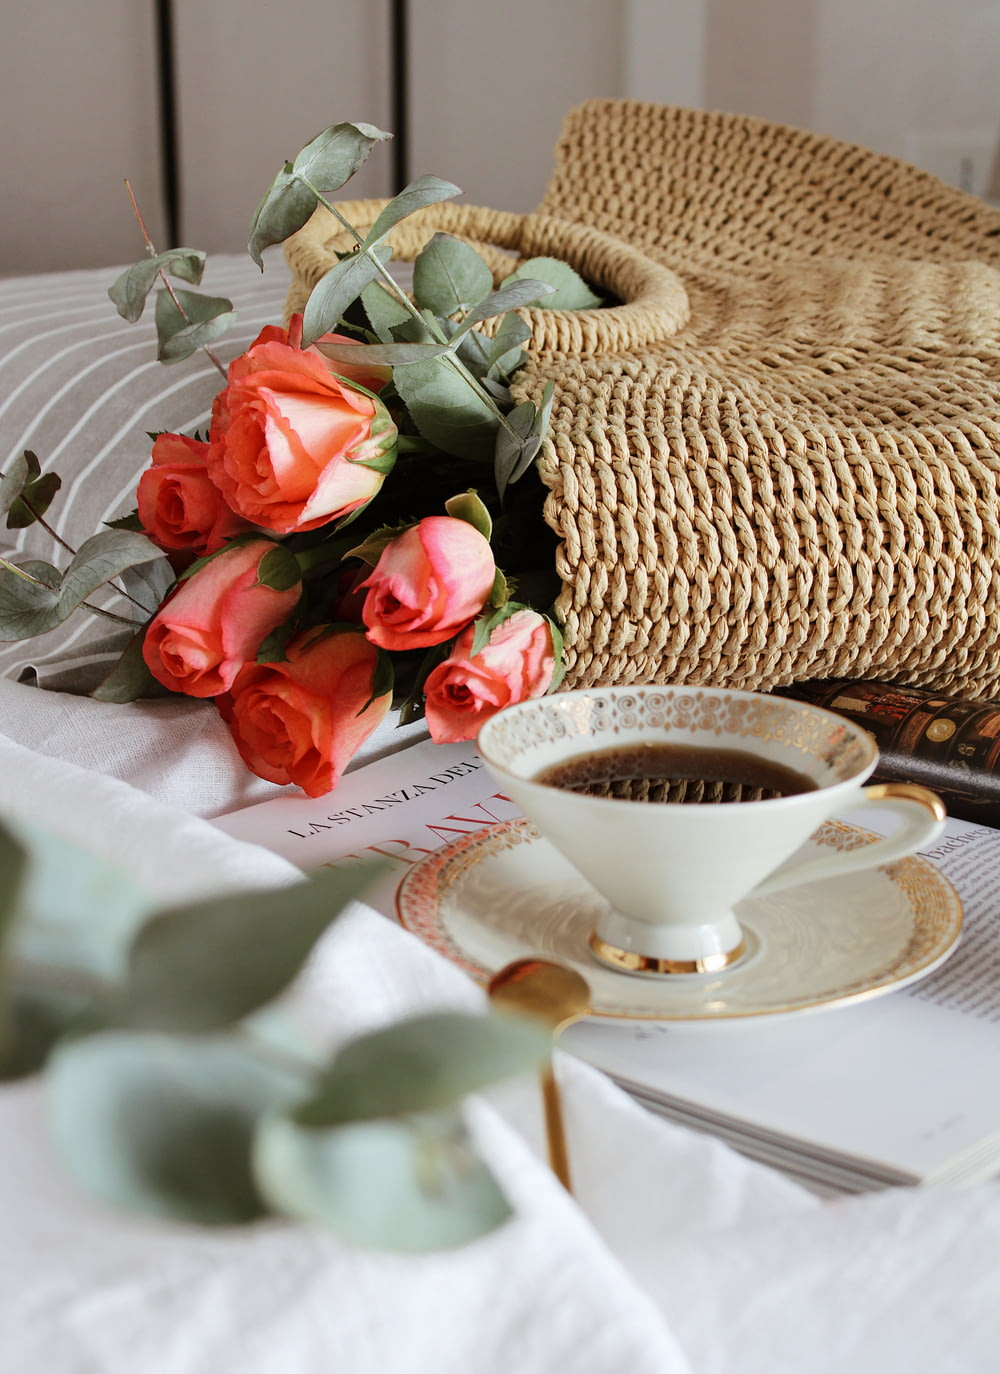 red roses beside white ceramic teacup on white table cloth